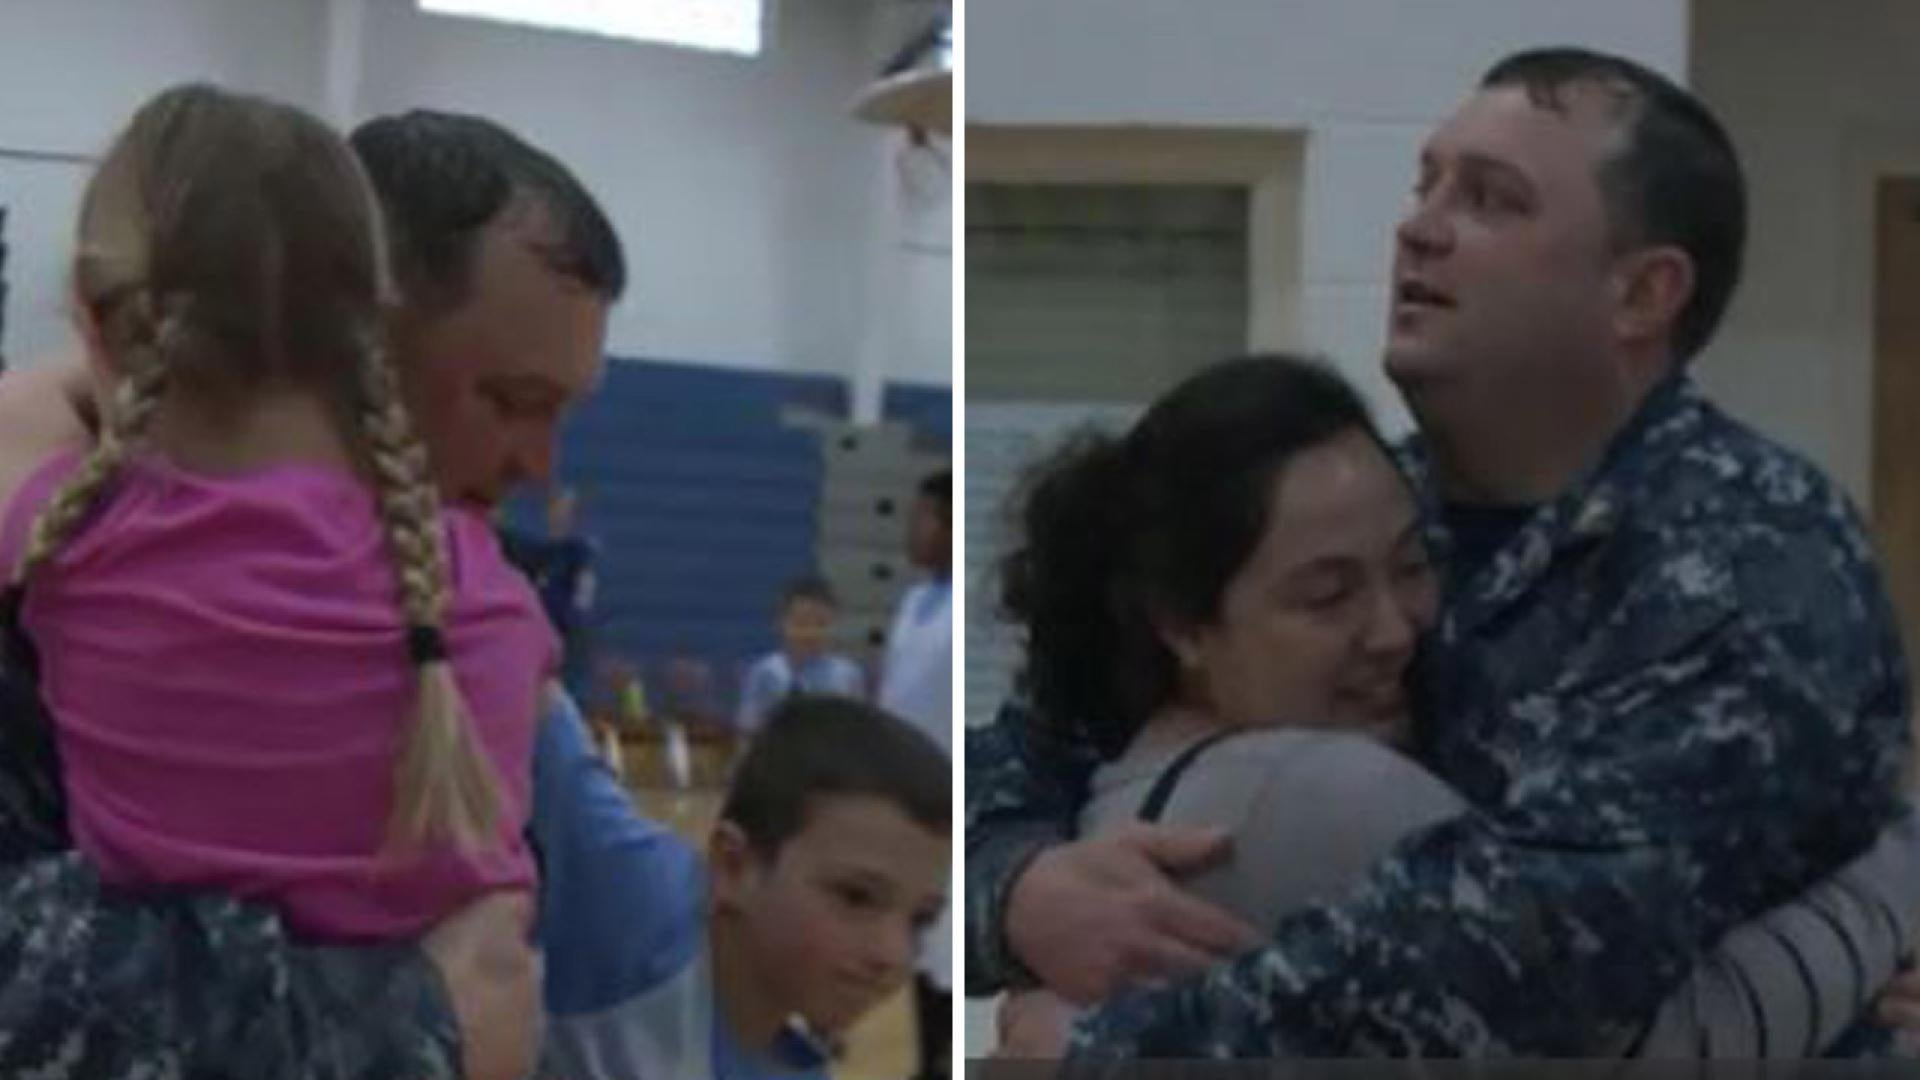 Nicholas Kane spent six months overseas with the Navy, so when the Virginia Beach dad was slated to come home, his sister, Krystina Landrey, decided to help him make it a moment to remember.